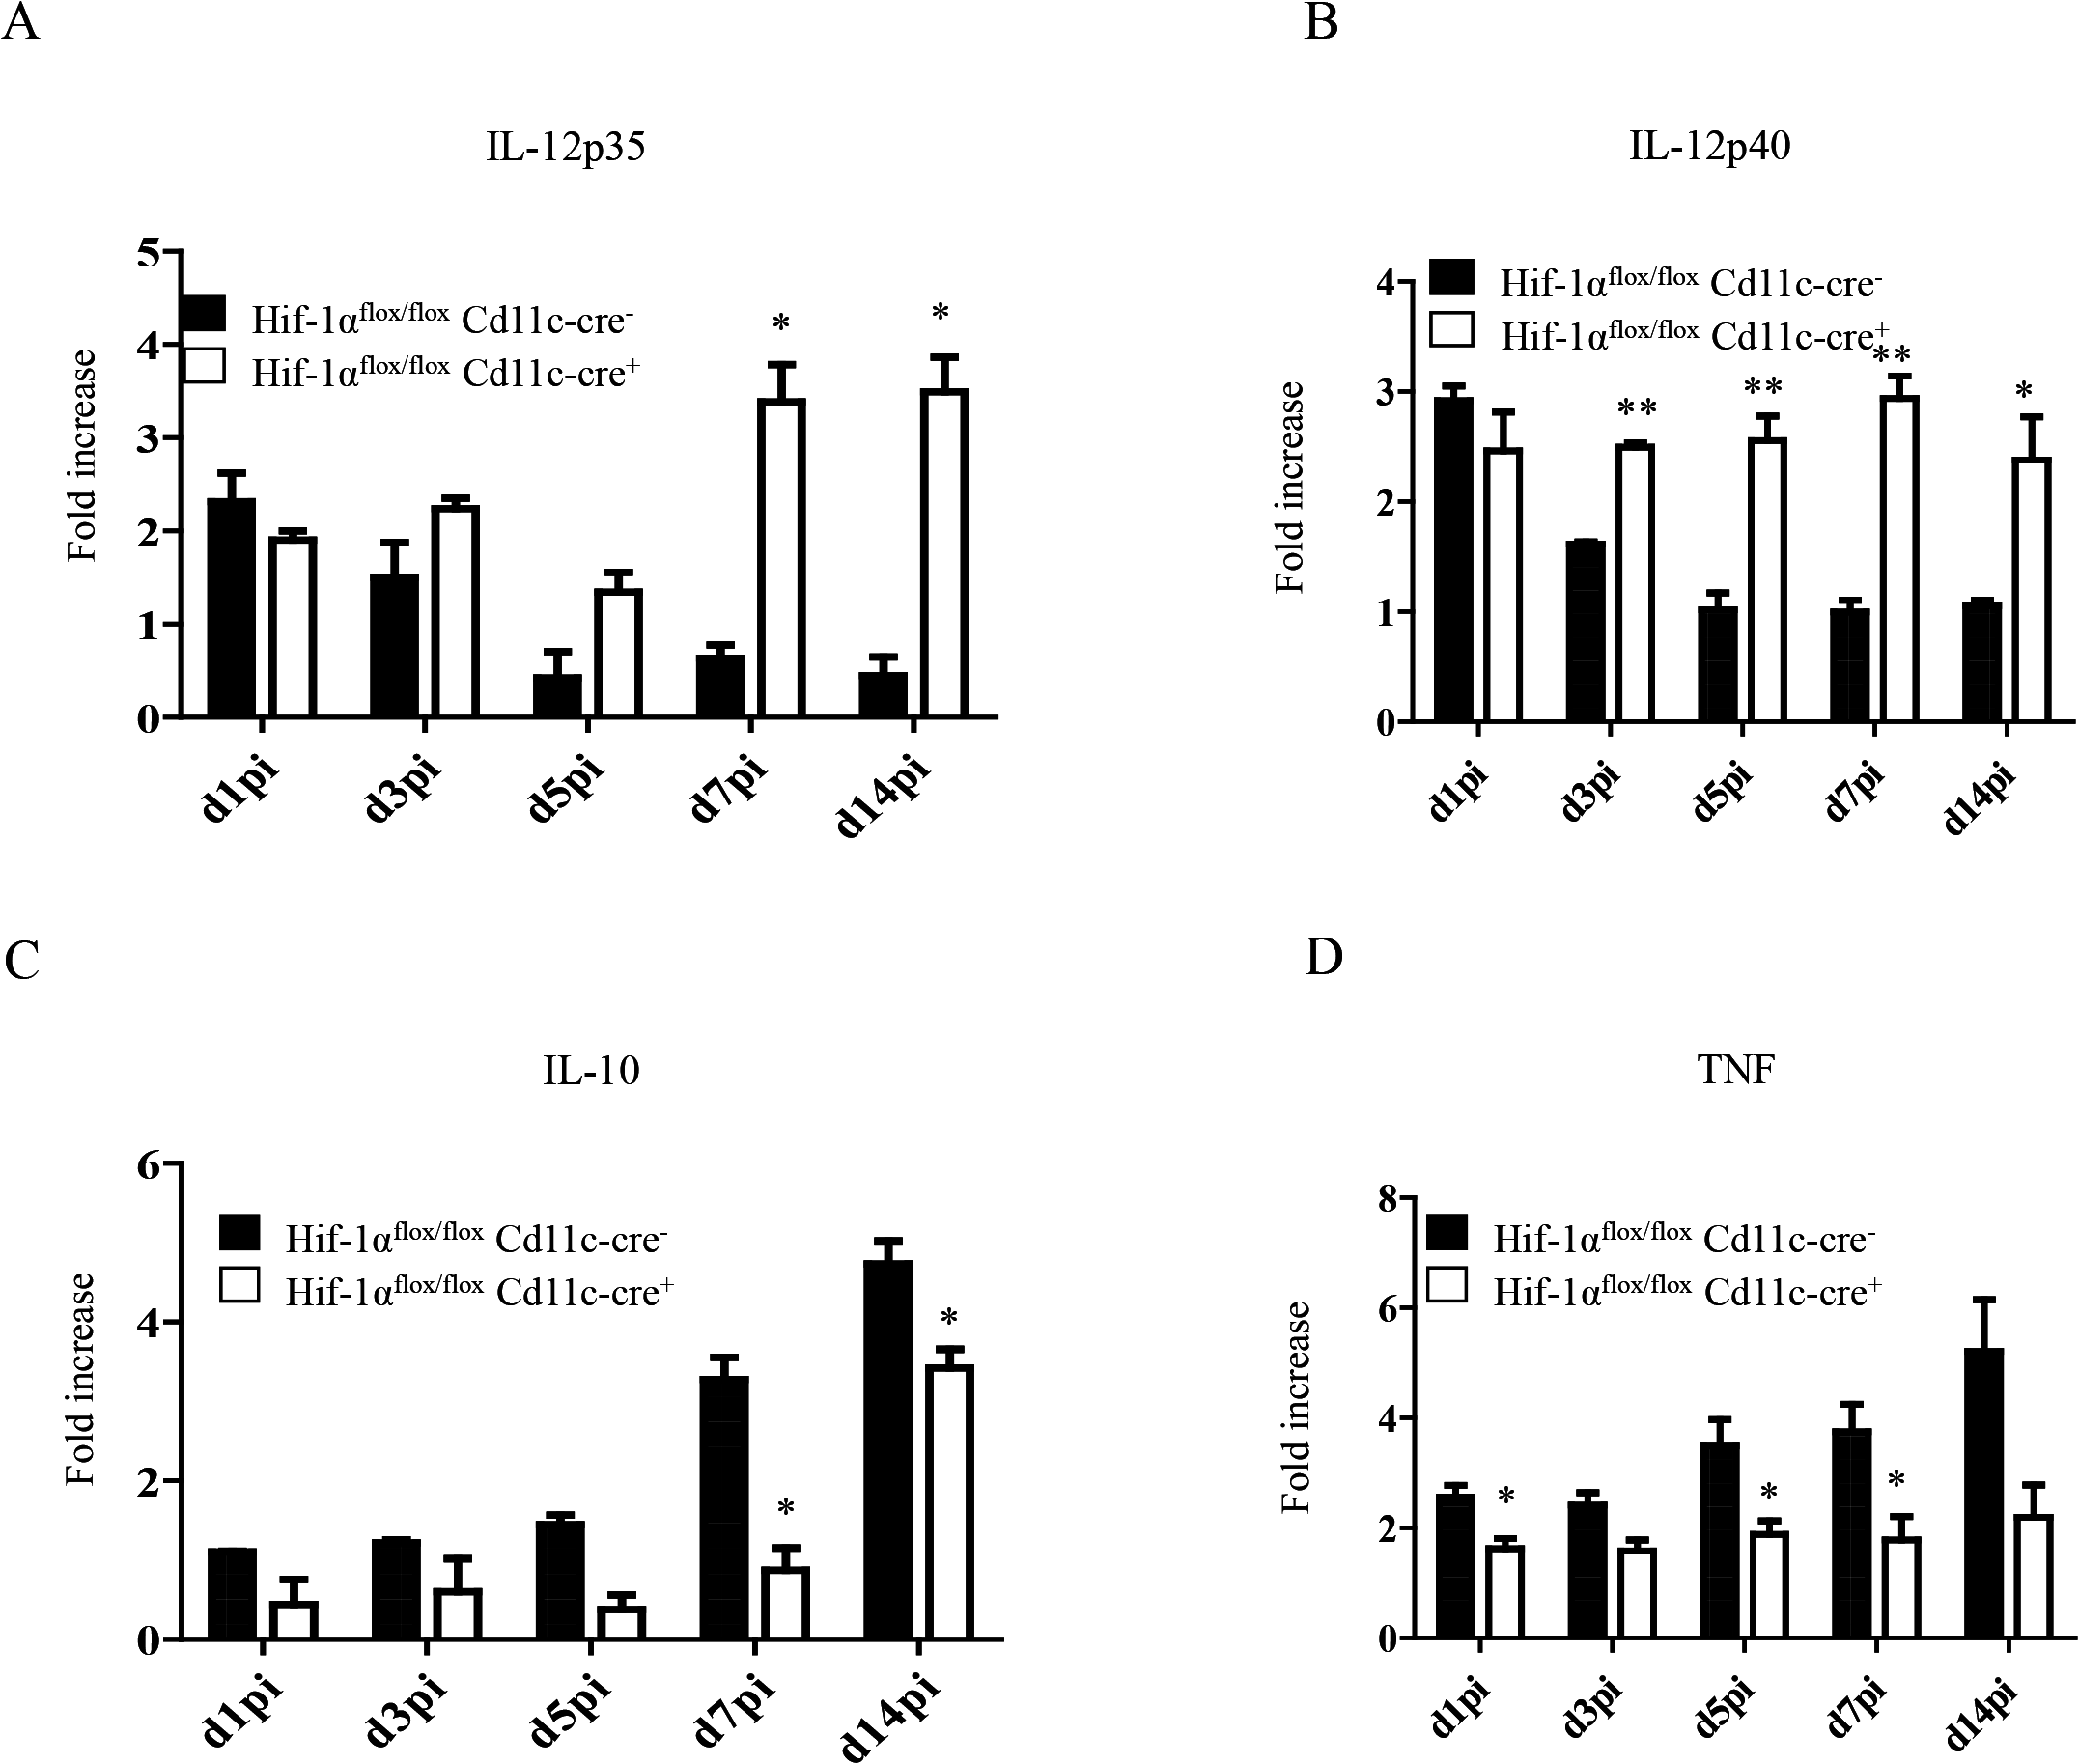 HIF-1α hampers dendritic cell function.